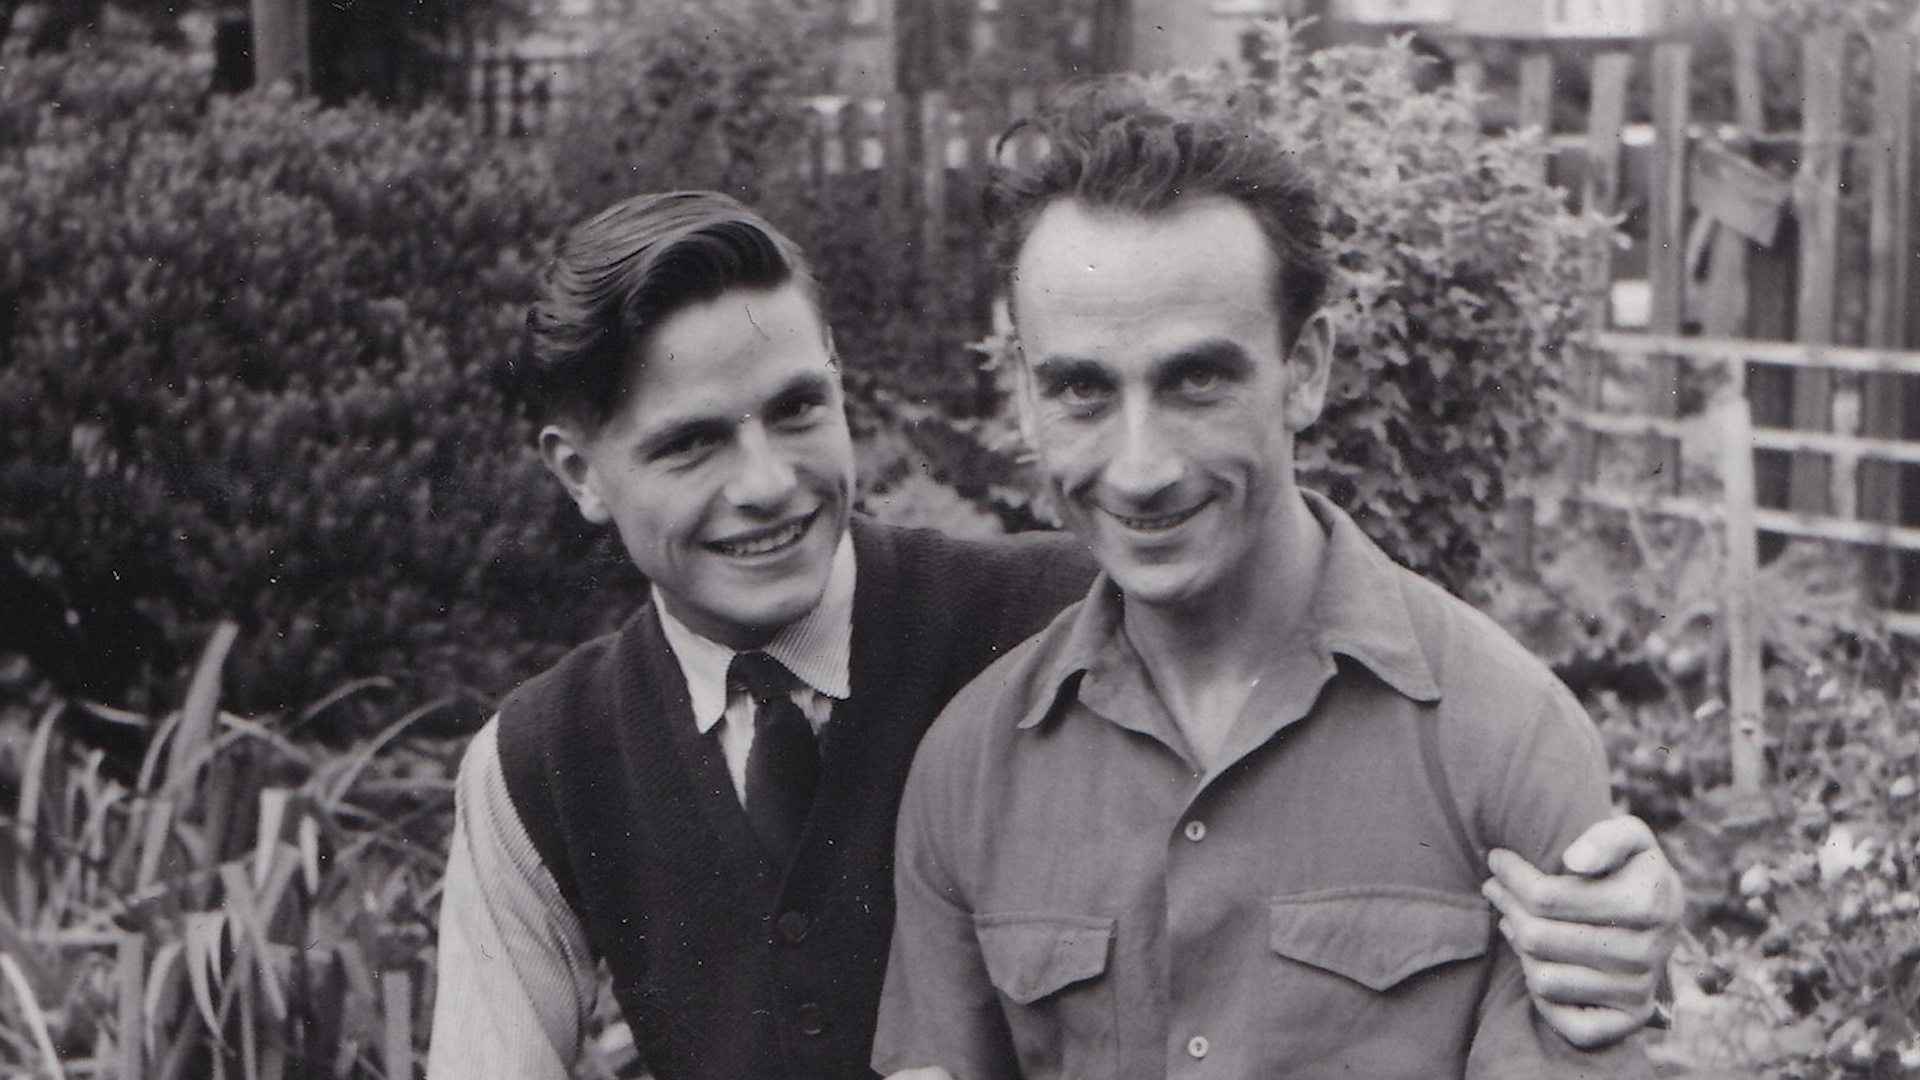 Reg and George pictured in black & white in their garden in the 1950s from the LGBT short film Rhiw Goch